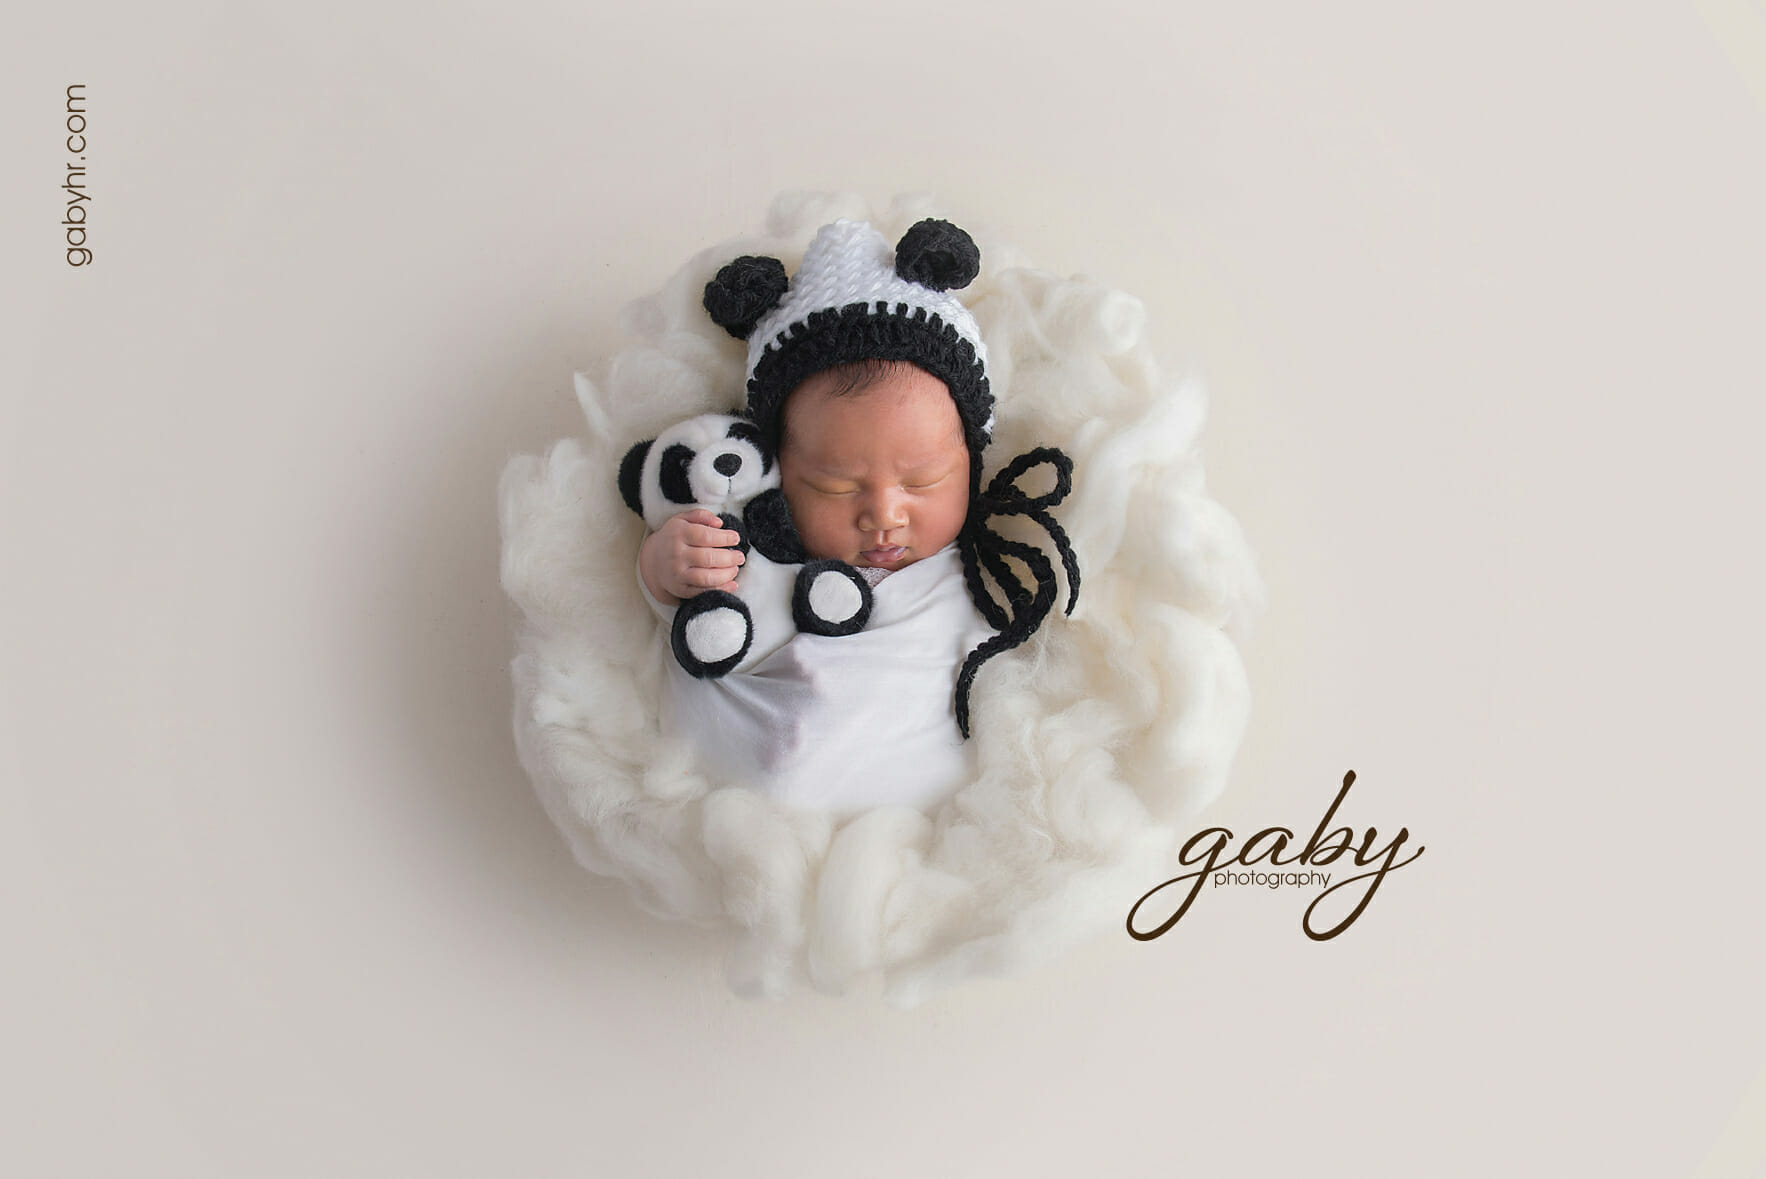 Studio or lifestyle photo shoot for your newborn baby – which is best?